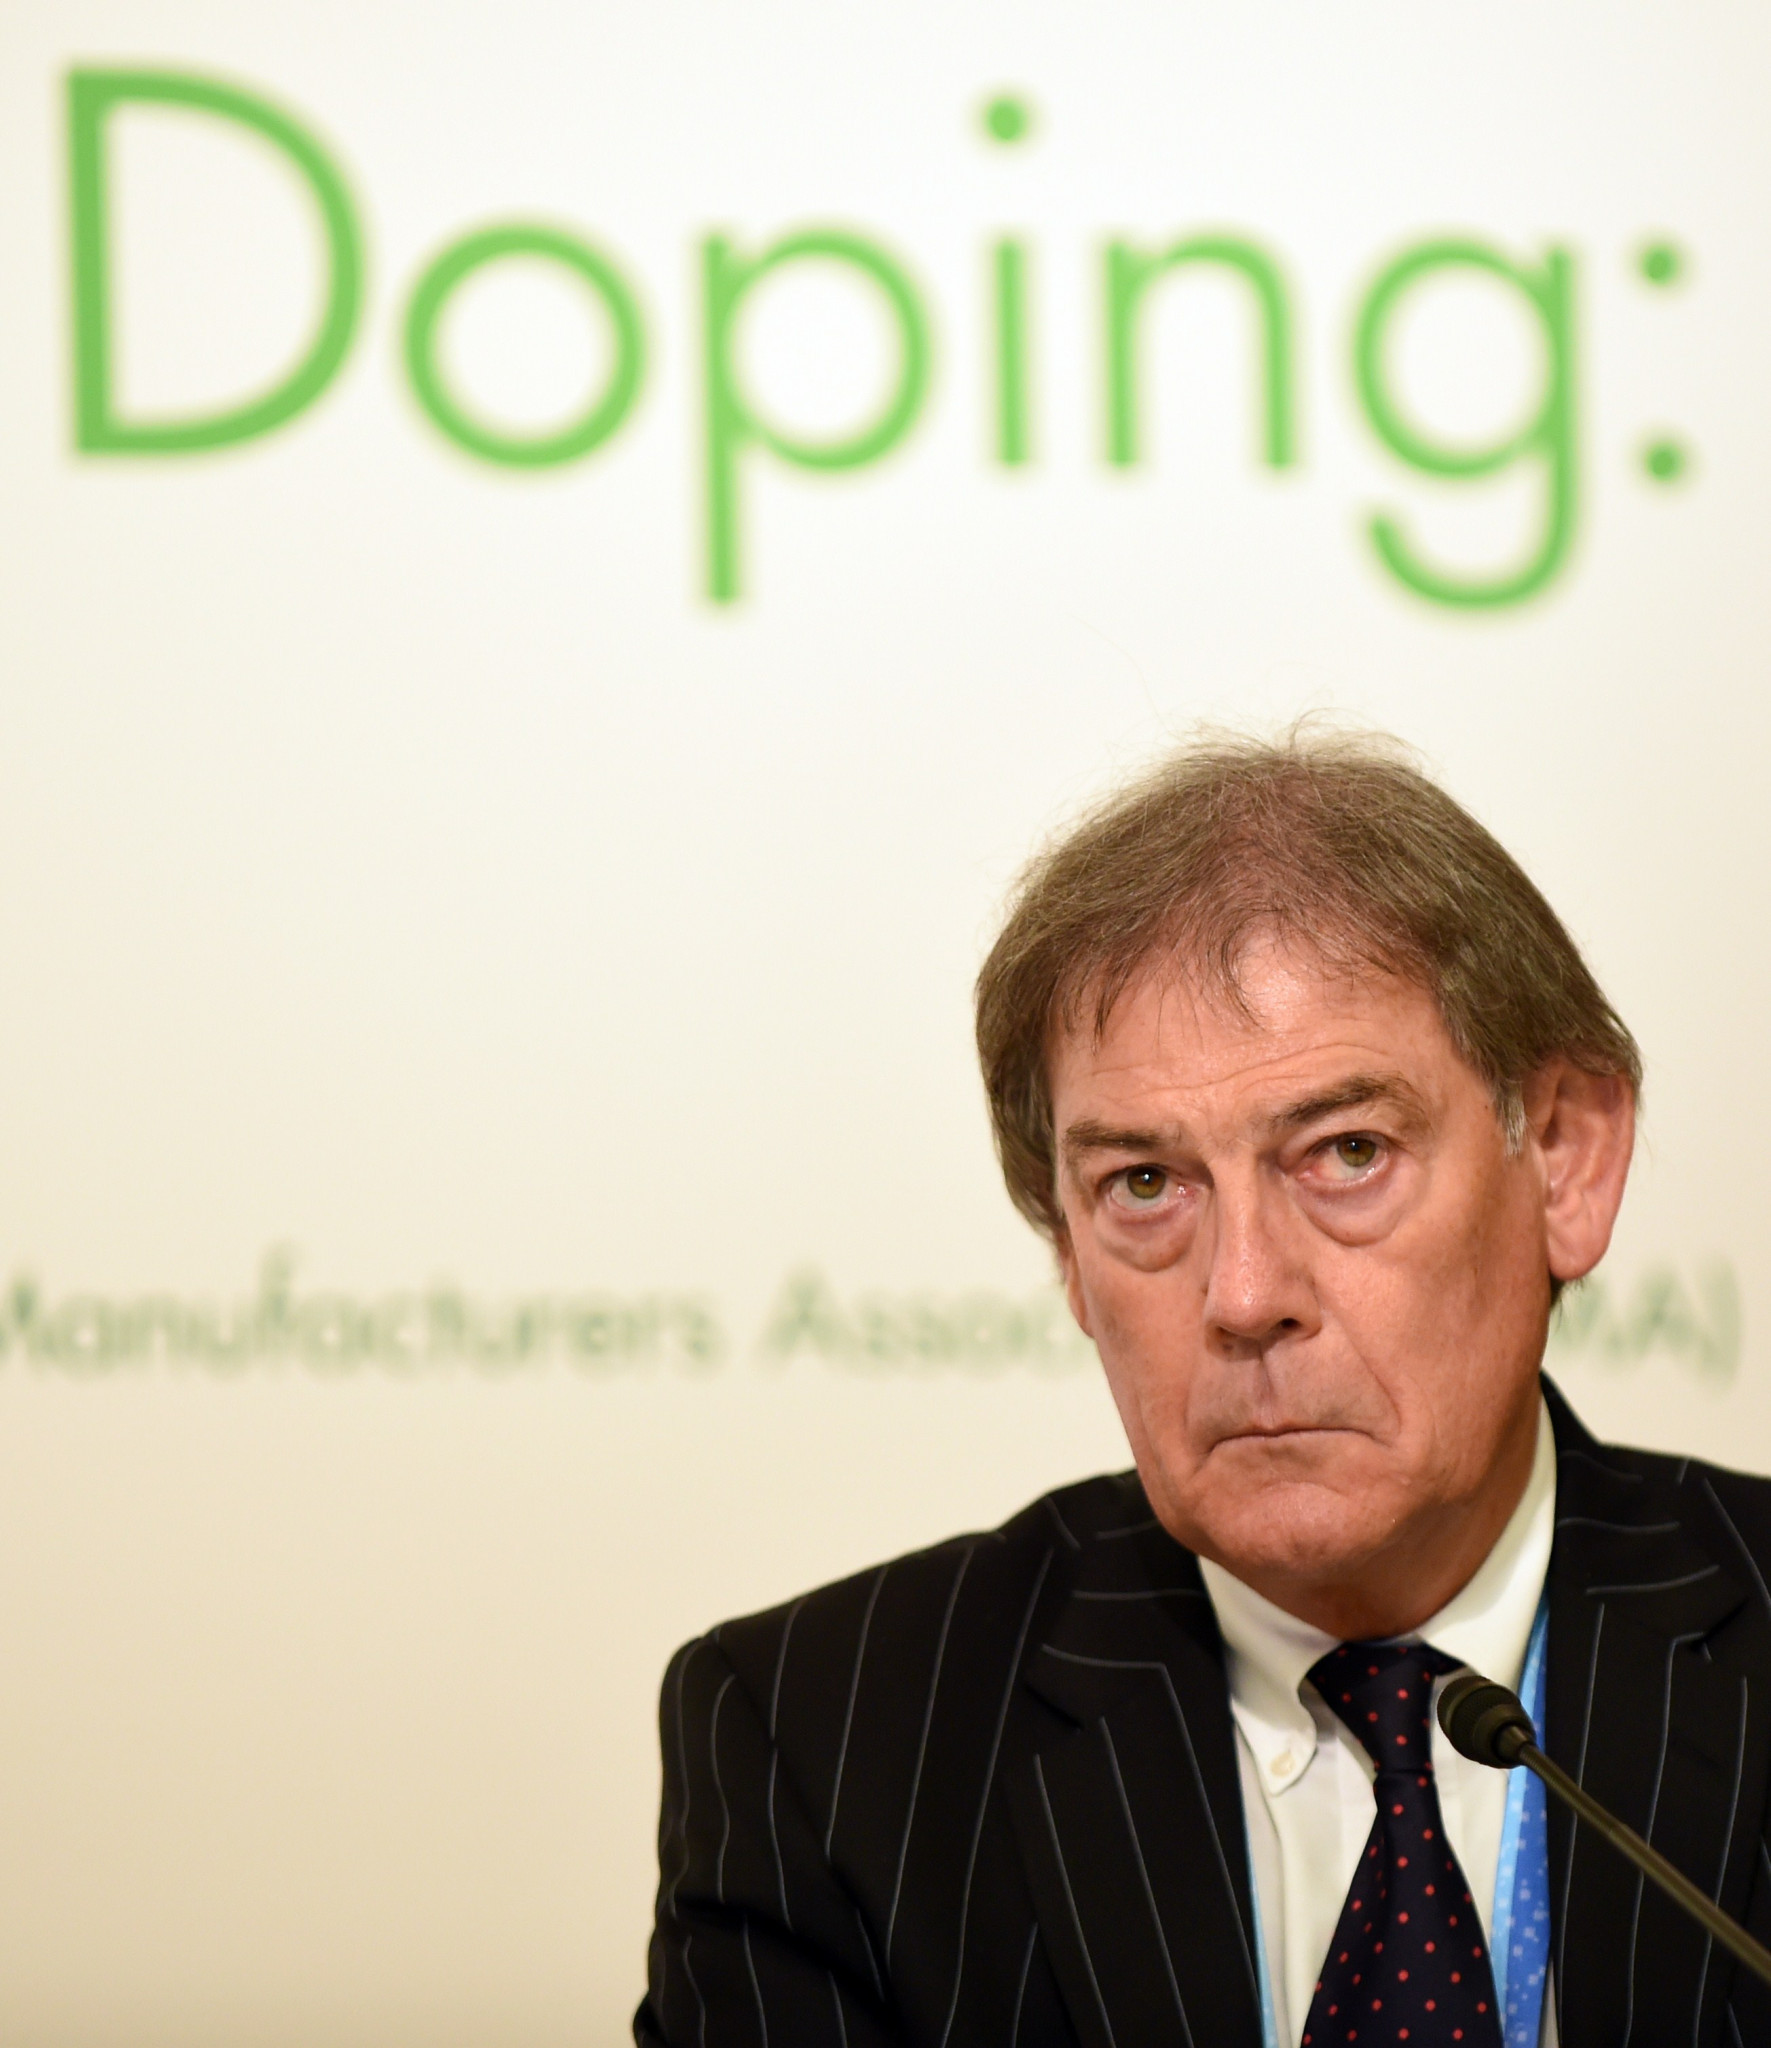 David Howman, chair of the Athletics Integrity Unit and former director general of the World Anti-Doping Agency, is among four appointments to the International Tennis Federation Ethics Commission ©Getty Images